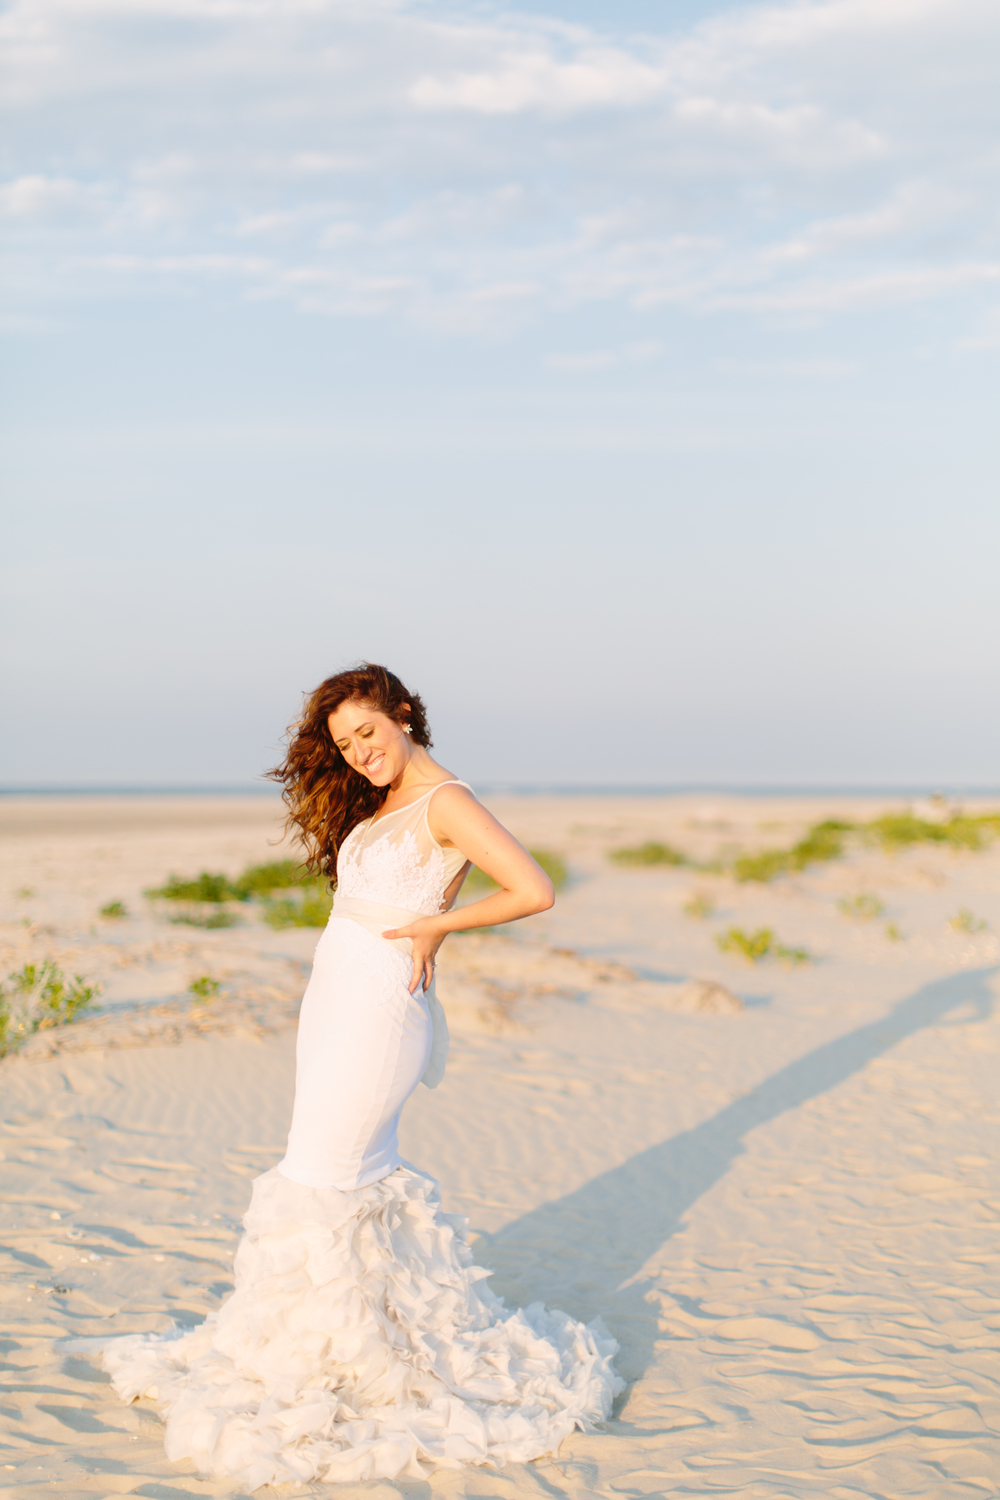 New-Jersey-Wedding-Photographer_Jessica-Cooper-Photography-17.jpg